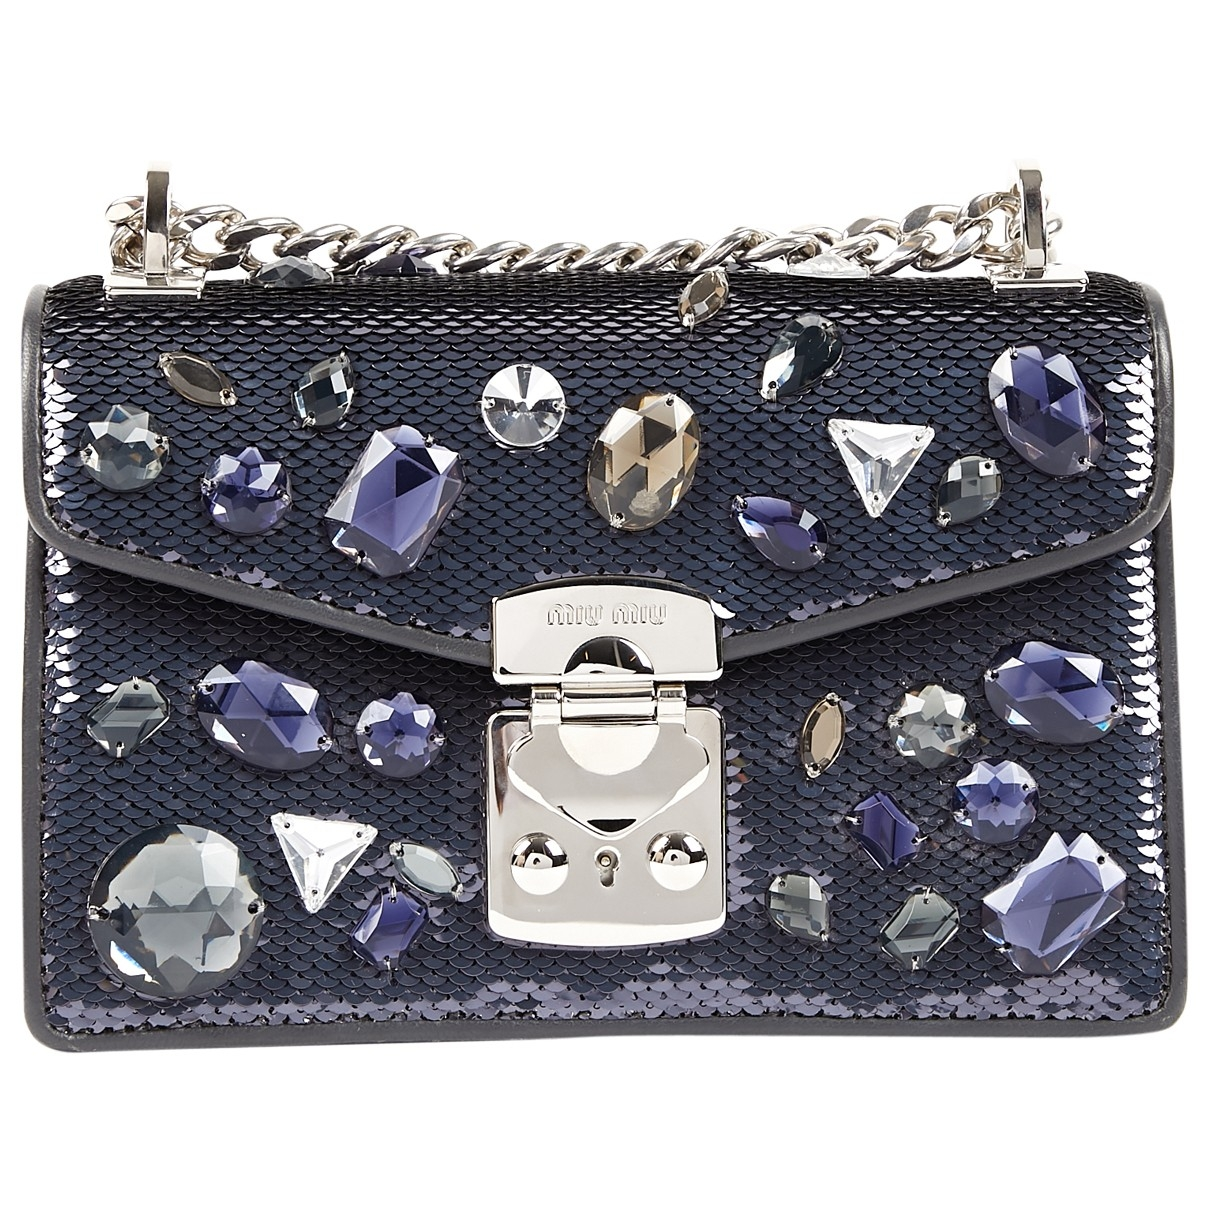 Miu Miu Miu Confidential Black Glitter handbag for Women \N